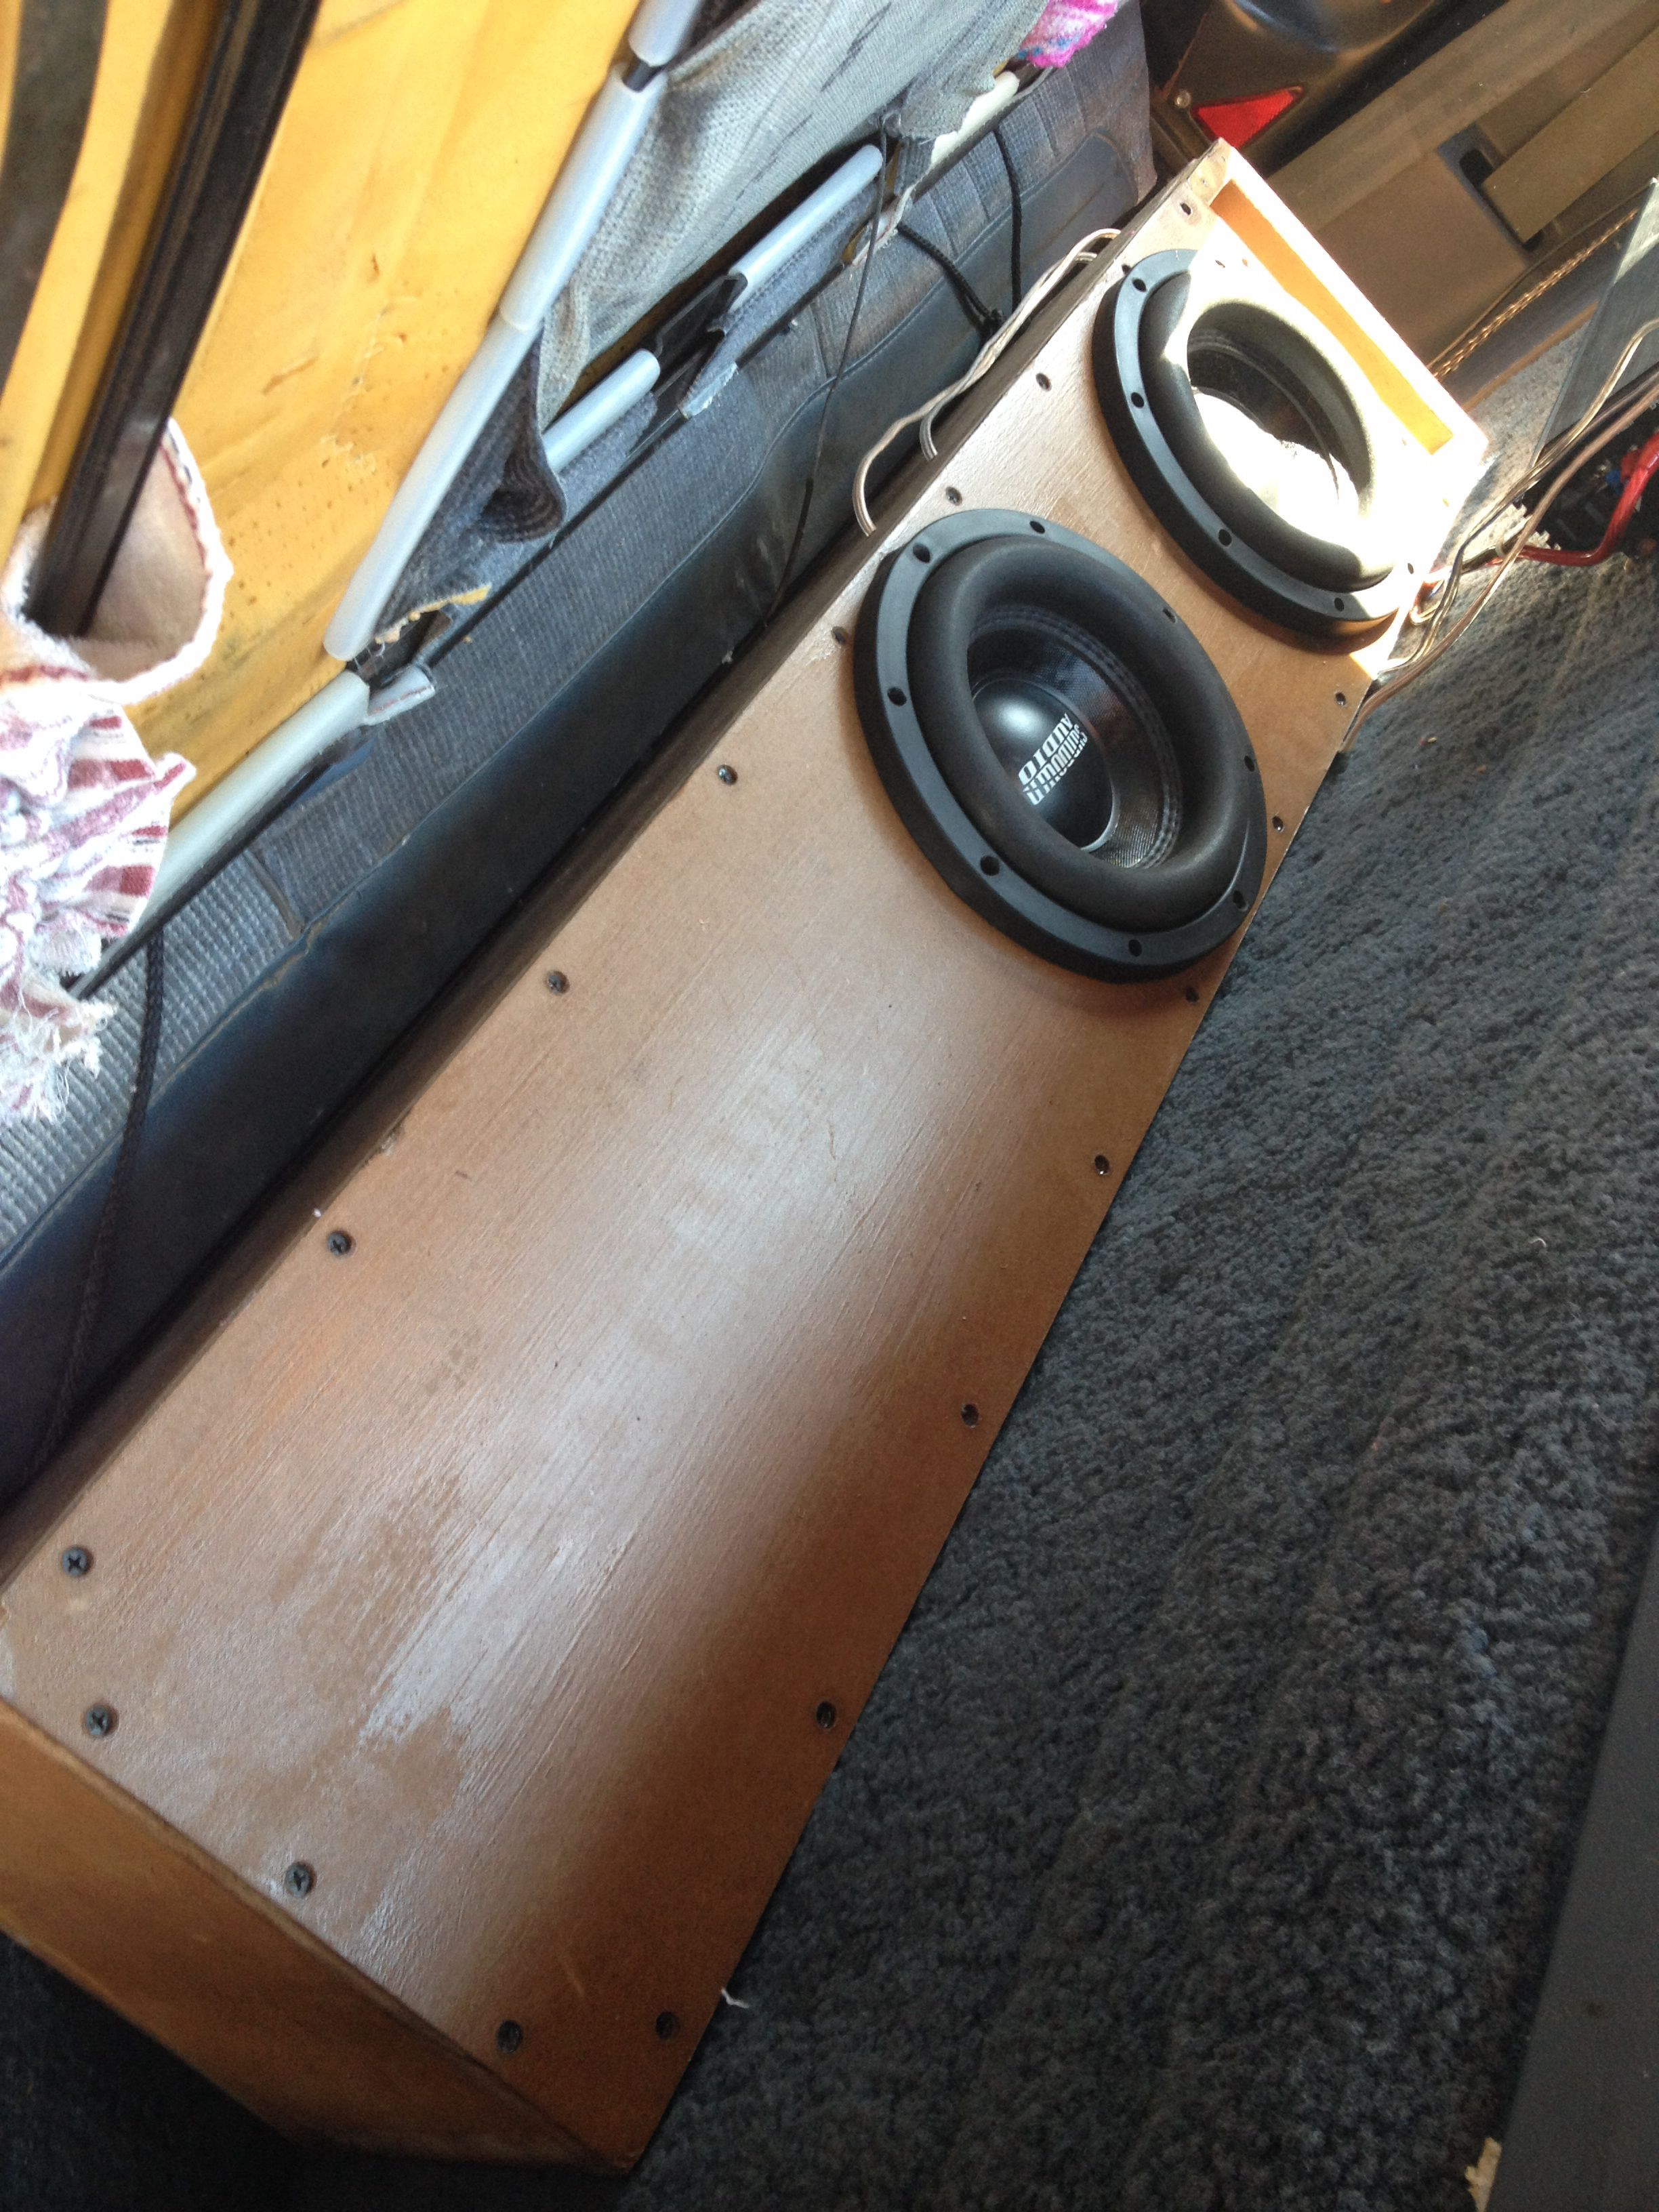 My Two Sundown Audio E8v3s In Mdf Ported Box Tuned Around 32 Hz System Diagram Page 10 Car Diymobileaudiocom Stereo Run Off A Rockford Fosgate Prime R5001 Amp At 2 Ohms All Of This 1991 F150